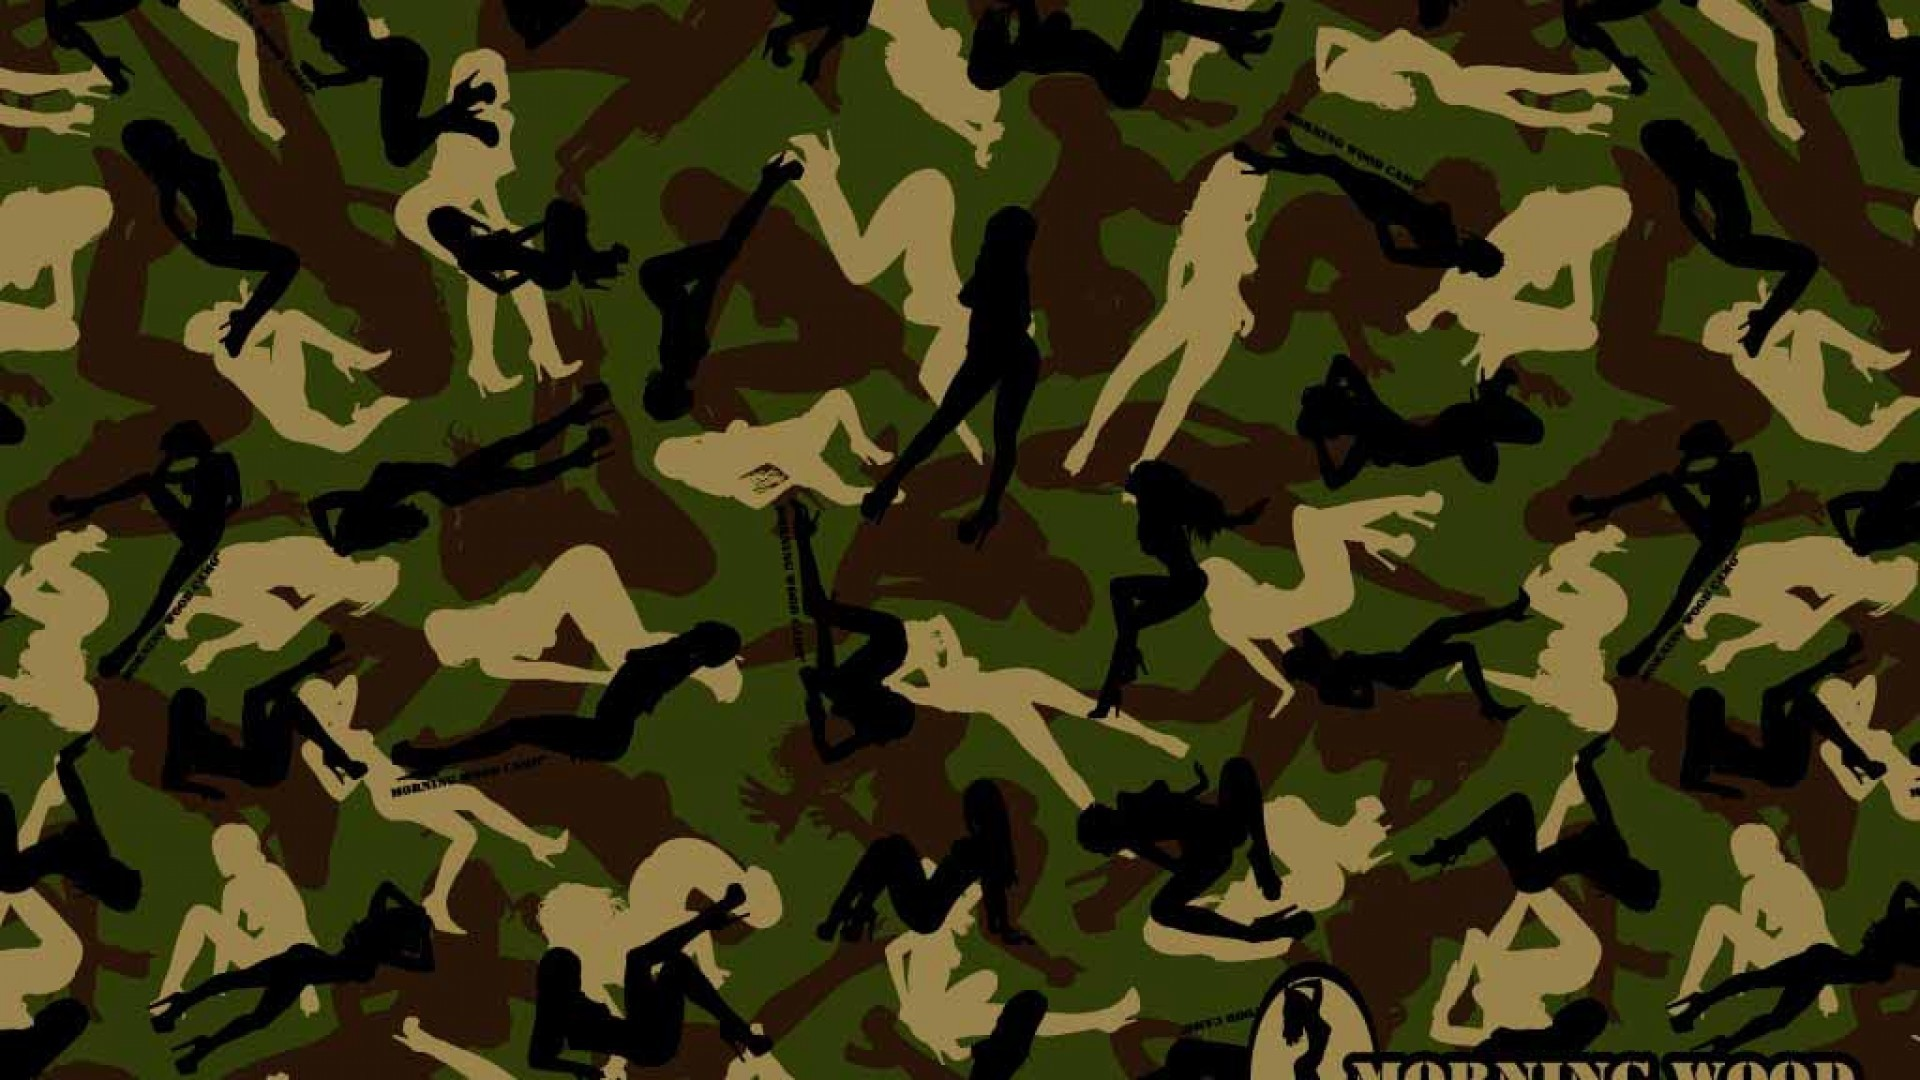 Pakistan Army Girl Wallpapers Browning Wallpaper Camo 53 Images